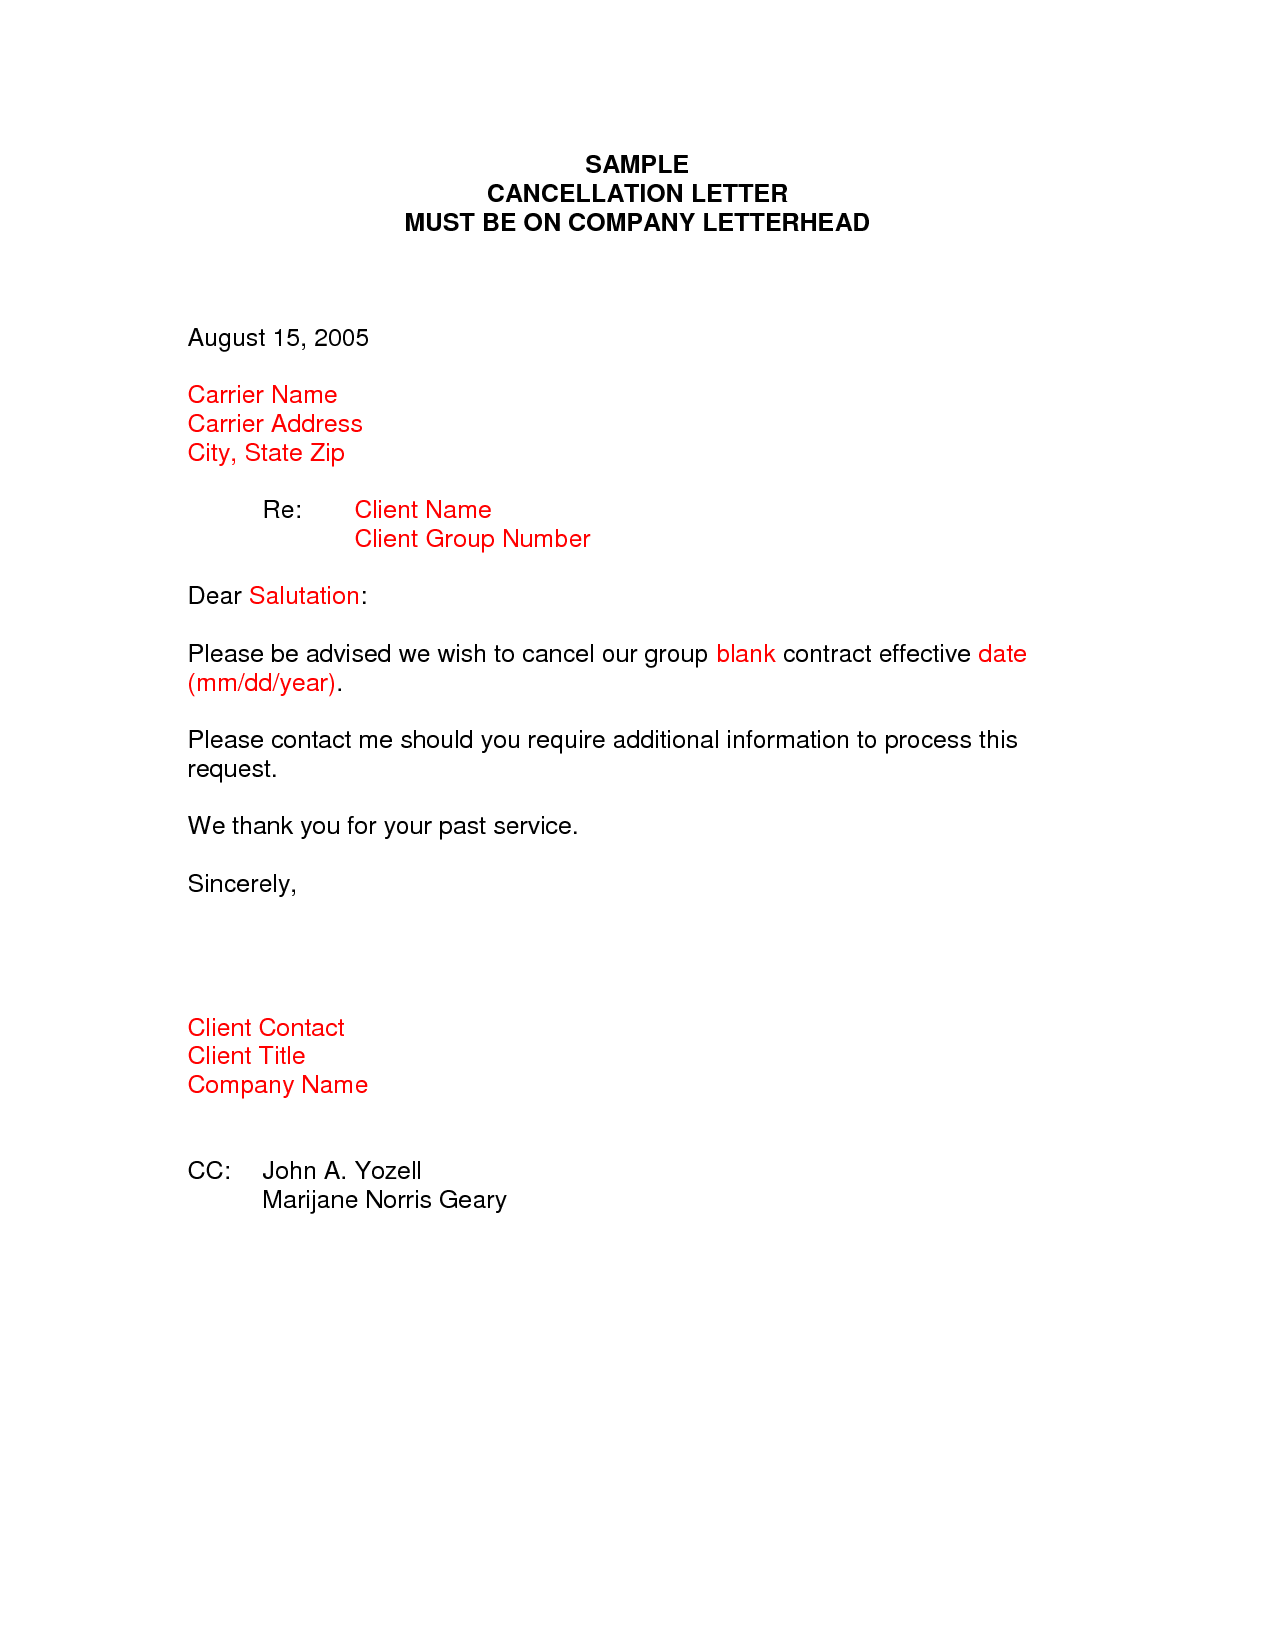 Sample termination letter format business case examples free cover sample termination letter format business case examples free cover for job cancellation samples image spiritdancerdesigns Choice Image